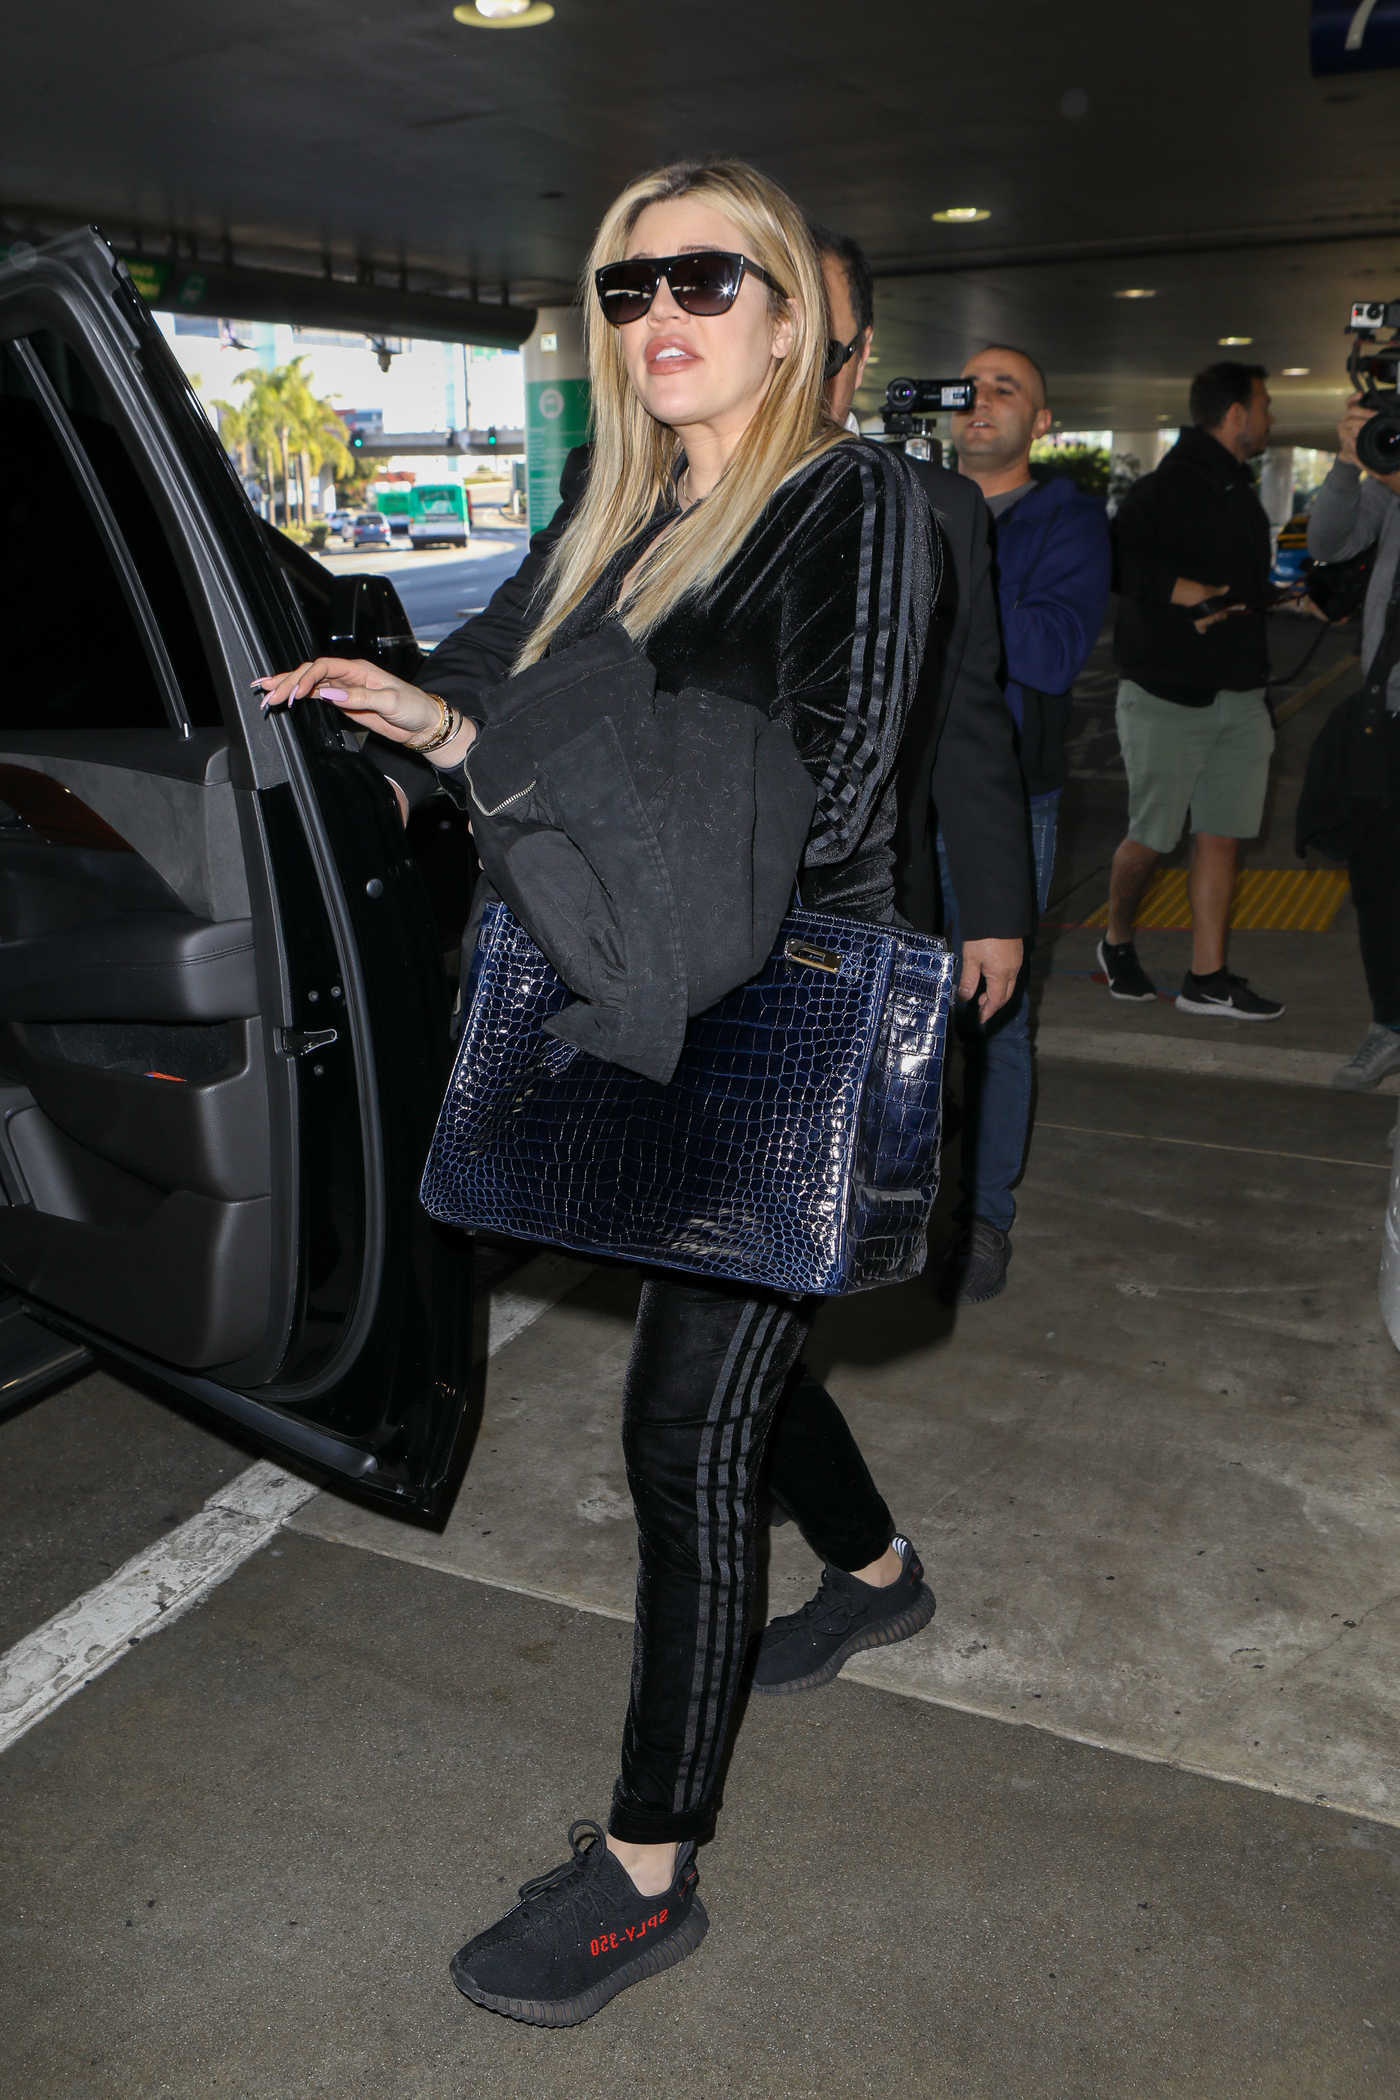 Khloe Kardashian Arrives at LAX Airport in Los Angeles 01/28/2018